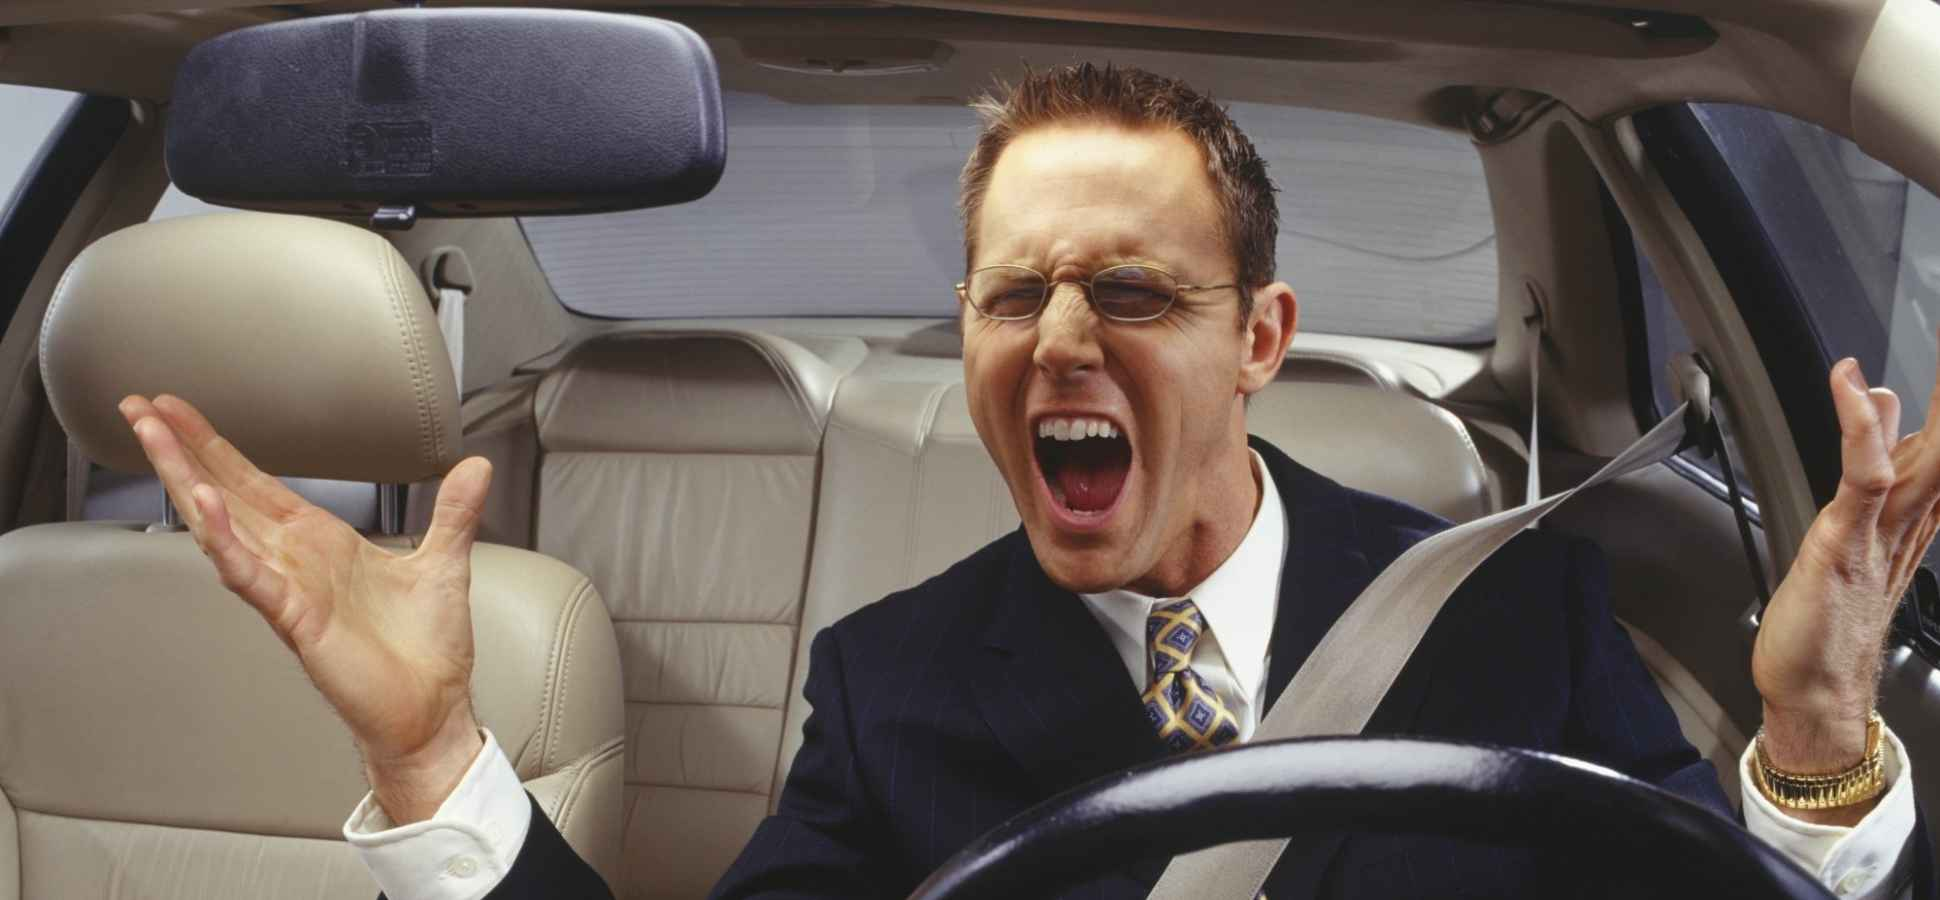 How You Drive Reveals a Lot About Your Personality